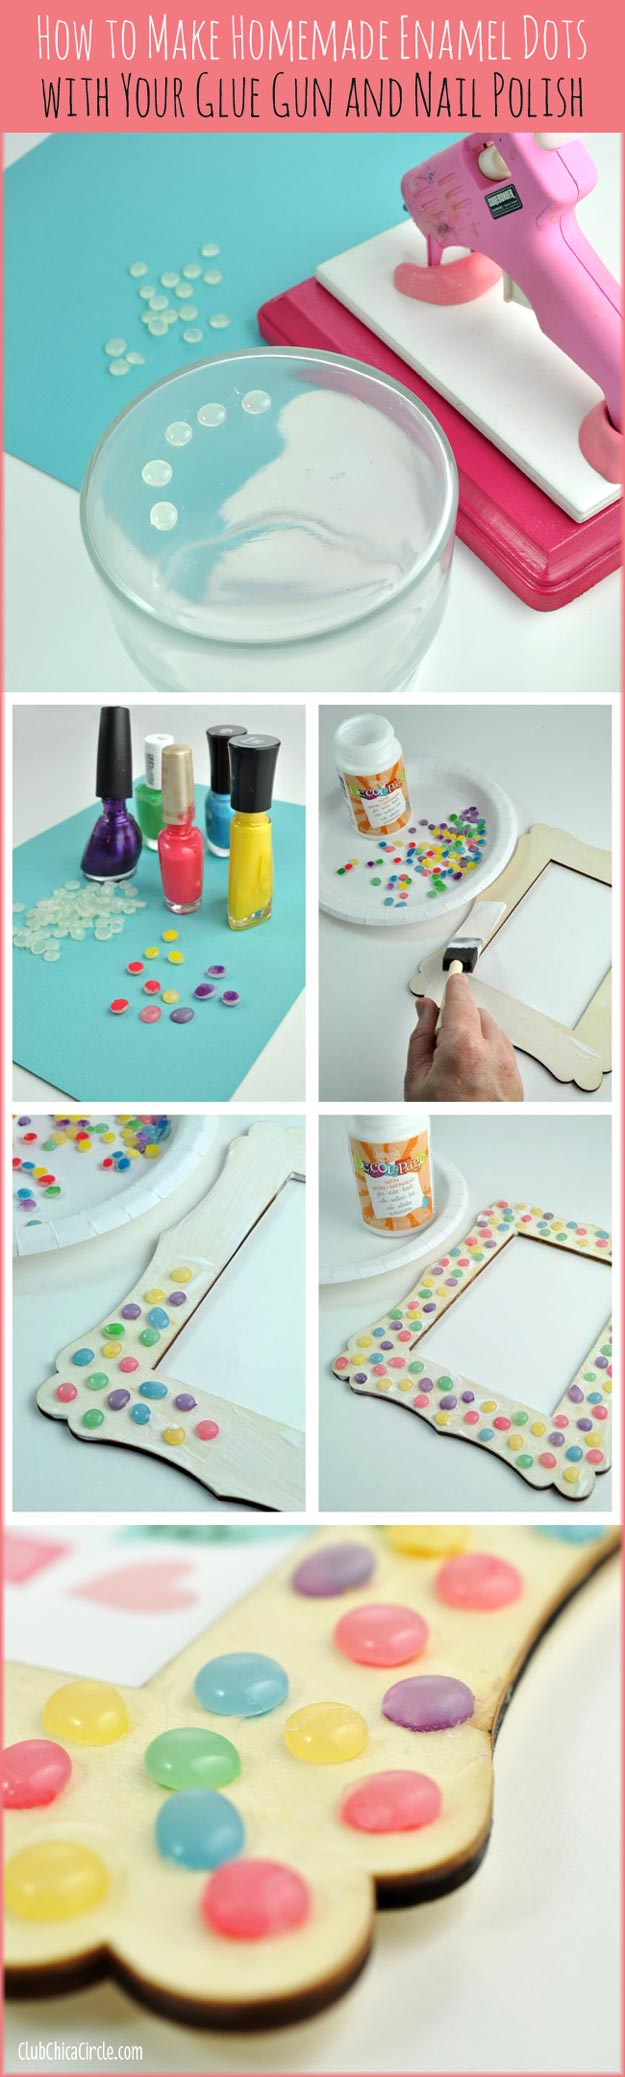 31 incredibly cool diy crafts using nail polish diy projects for